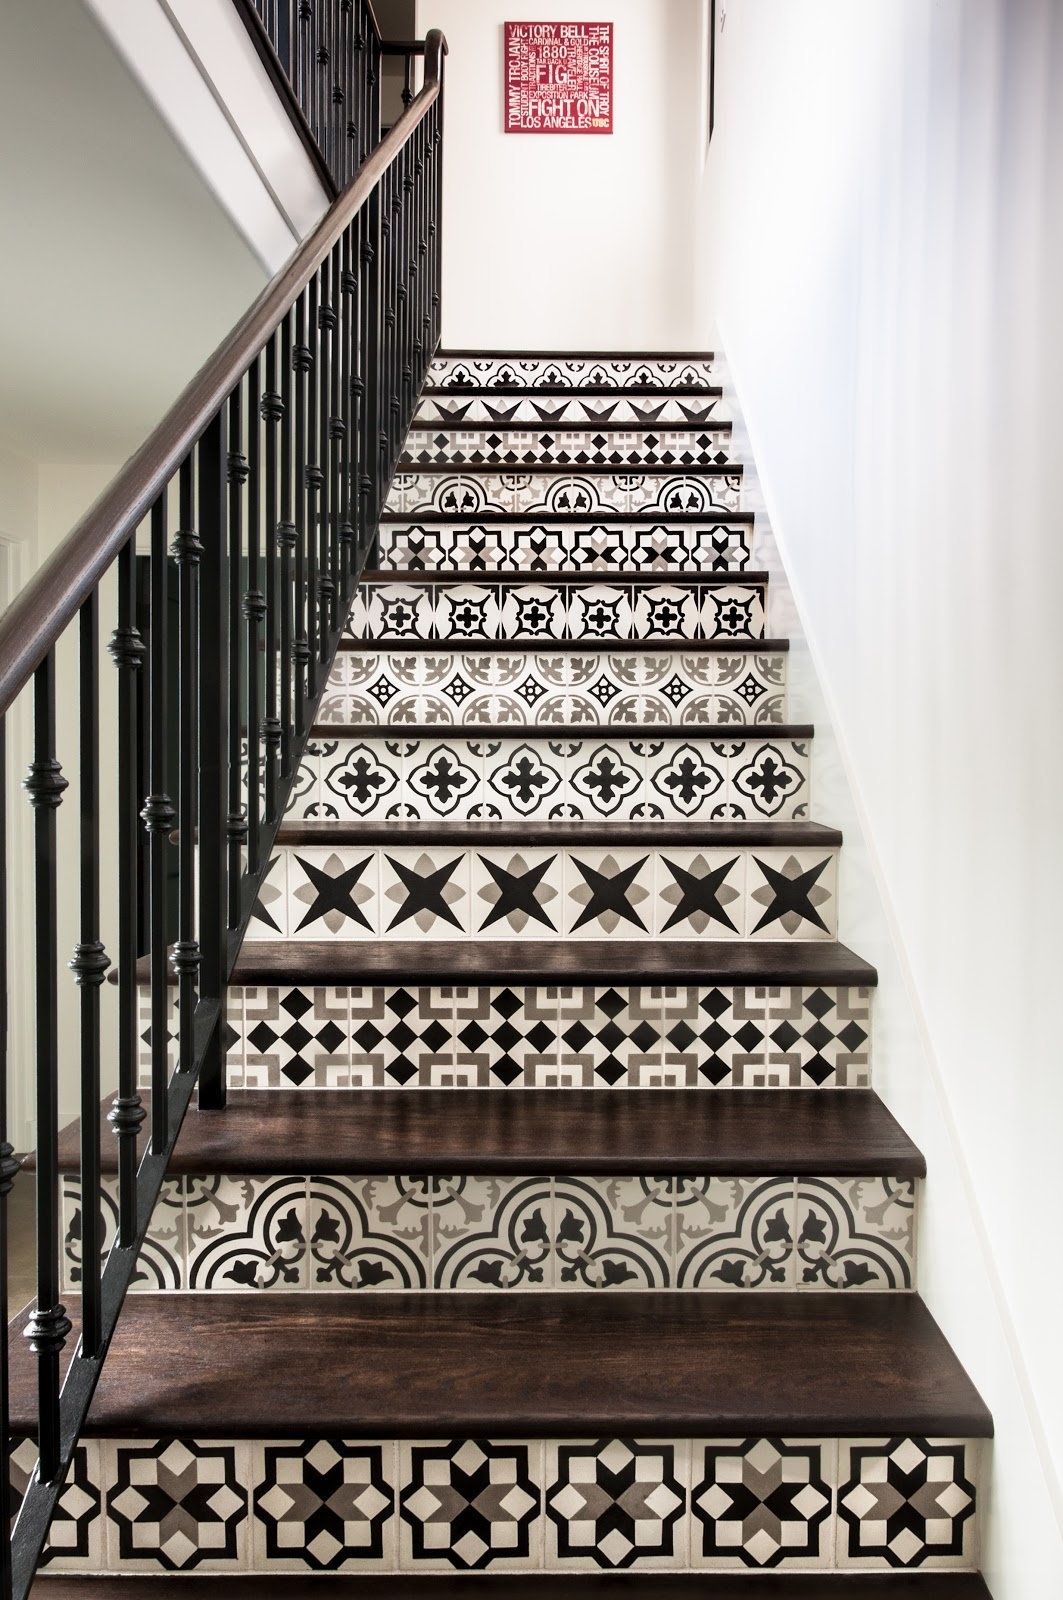 Gt Stair Riser Granada Tile Cement